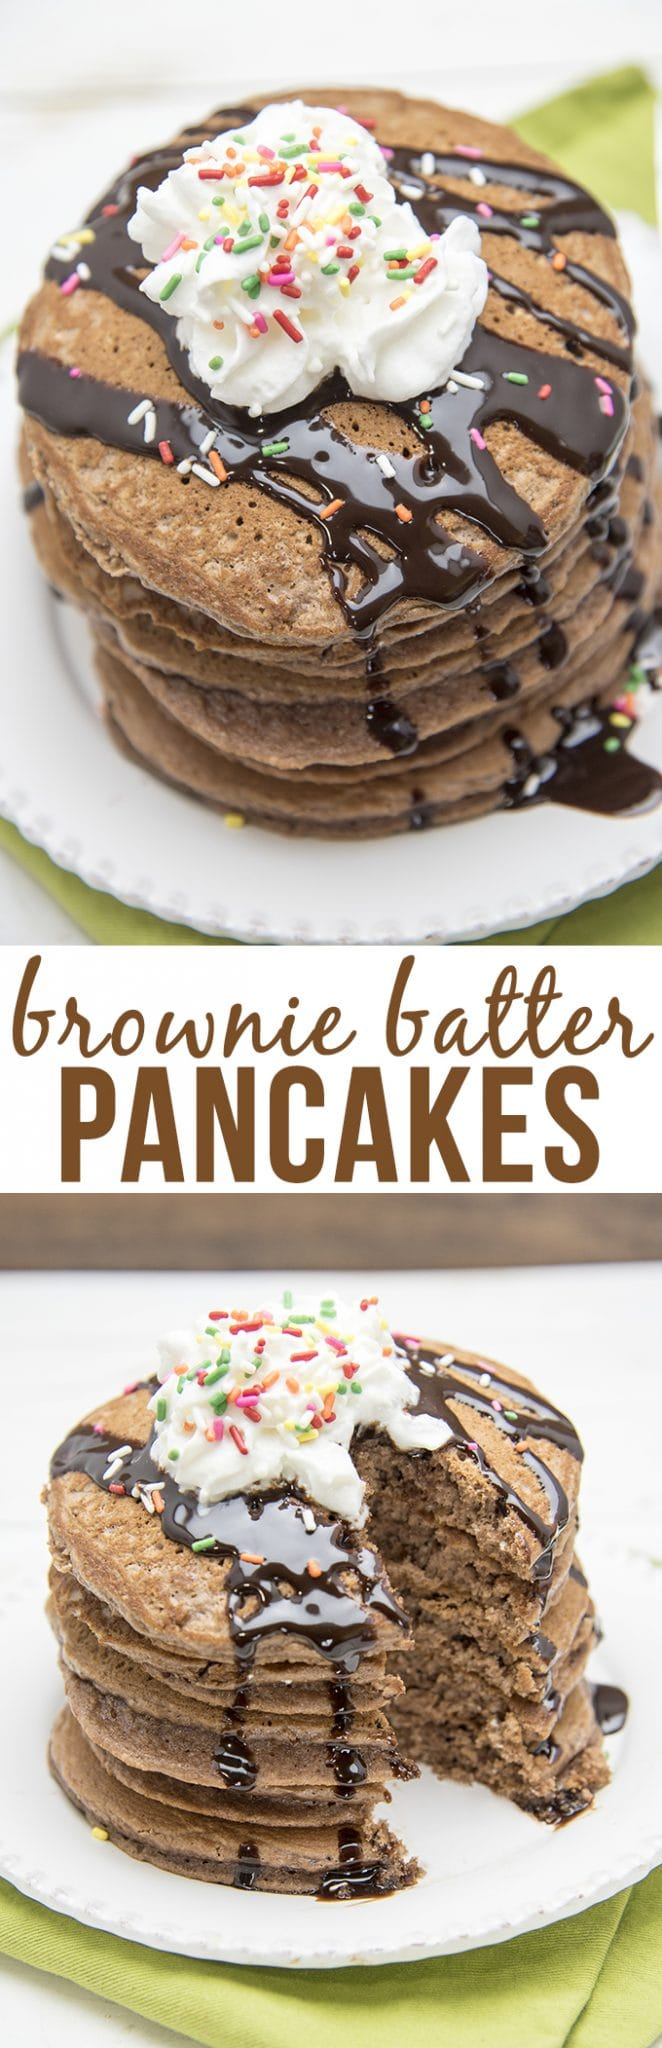 These brownie batter pancakes are the perfect fluffy, chocolatey, and decadent pancakes - topped with whipped cream, chocolate syrup and sprinkles, they're perfect for a birthday breakfast!